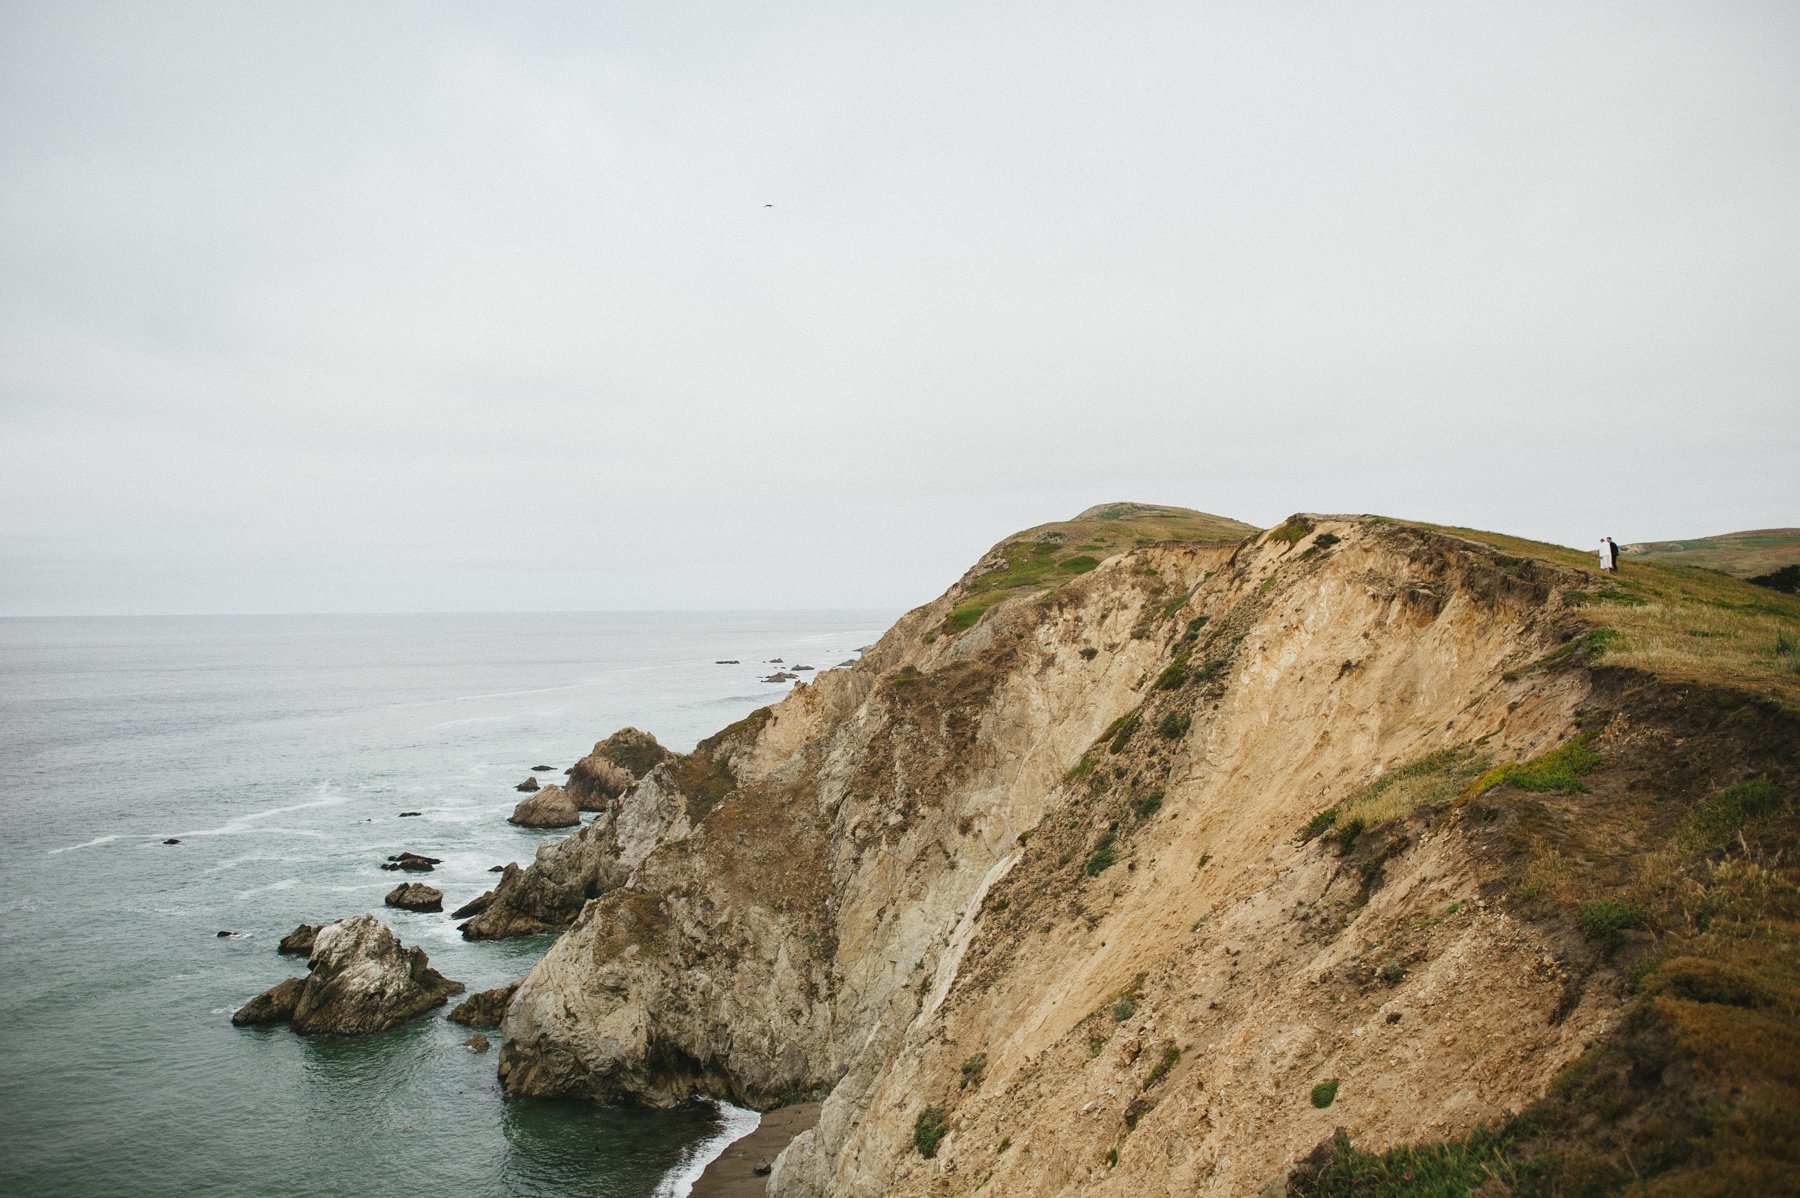 Point Reyes Day-Before Shoot by Daring Wanderer